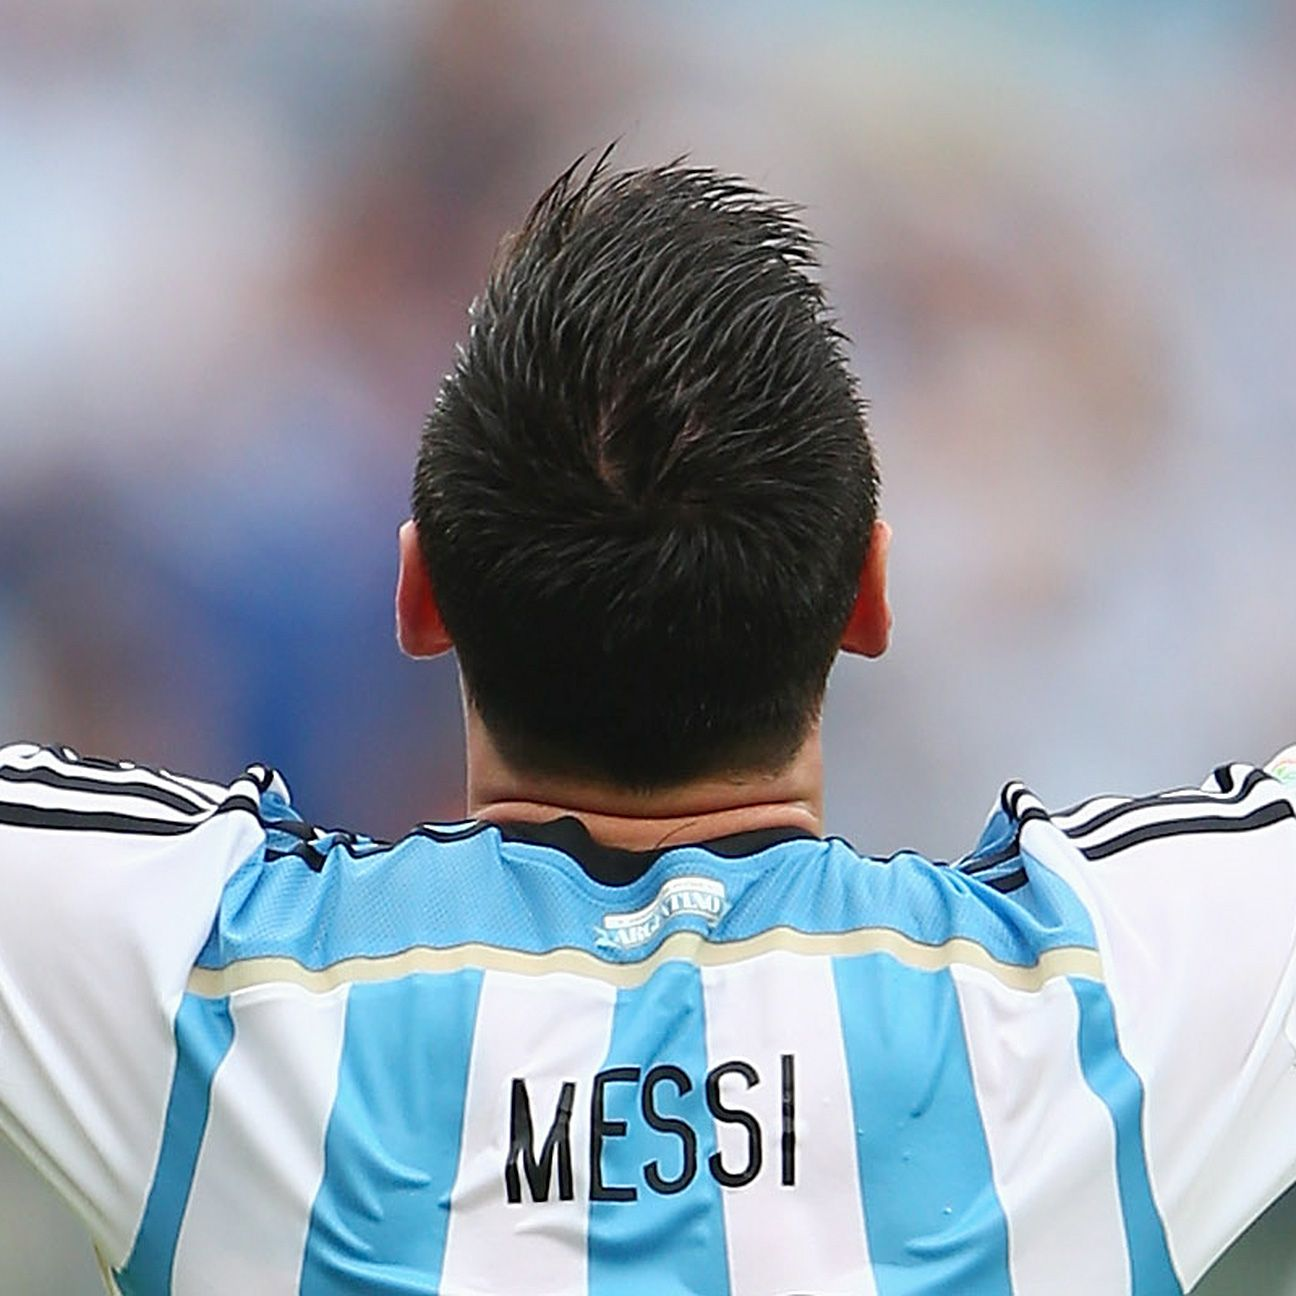 Lionel Messi's finally stepping up at a World Cup. Is it enough for Argentina?